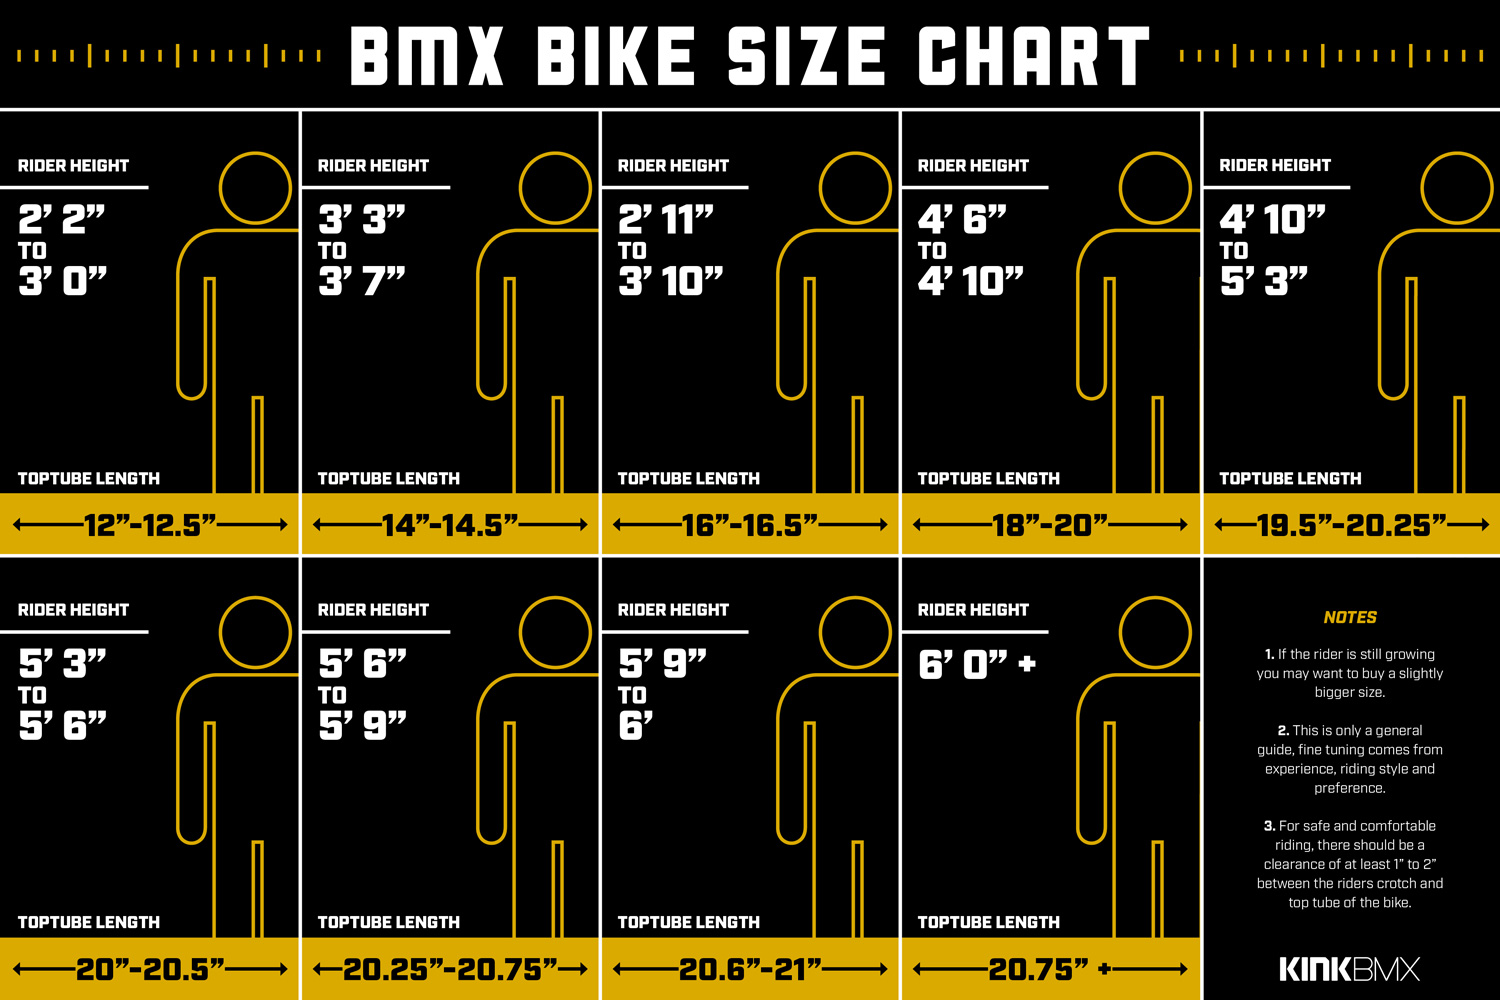 Kink BMX Bike Size Guide